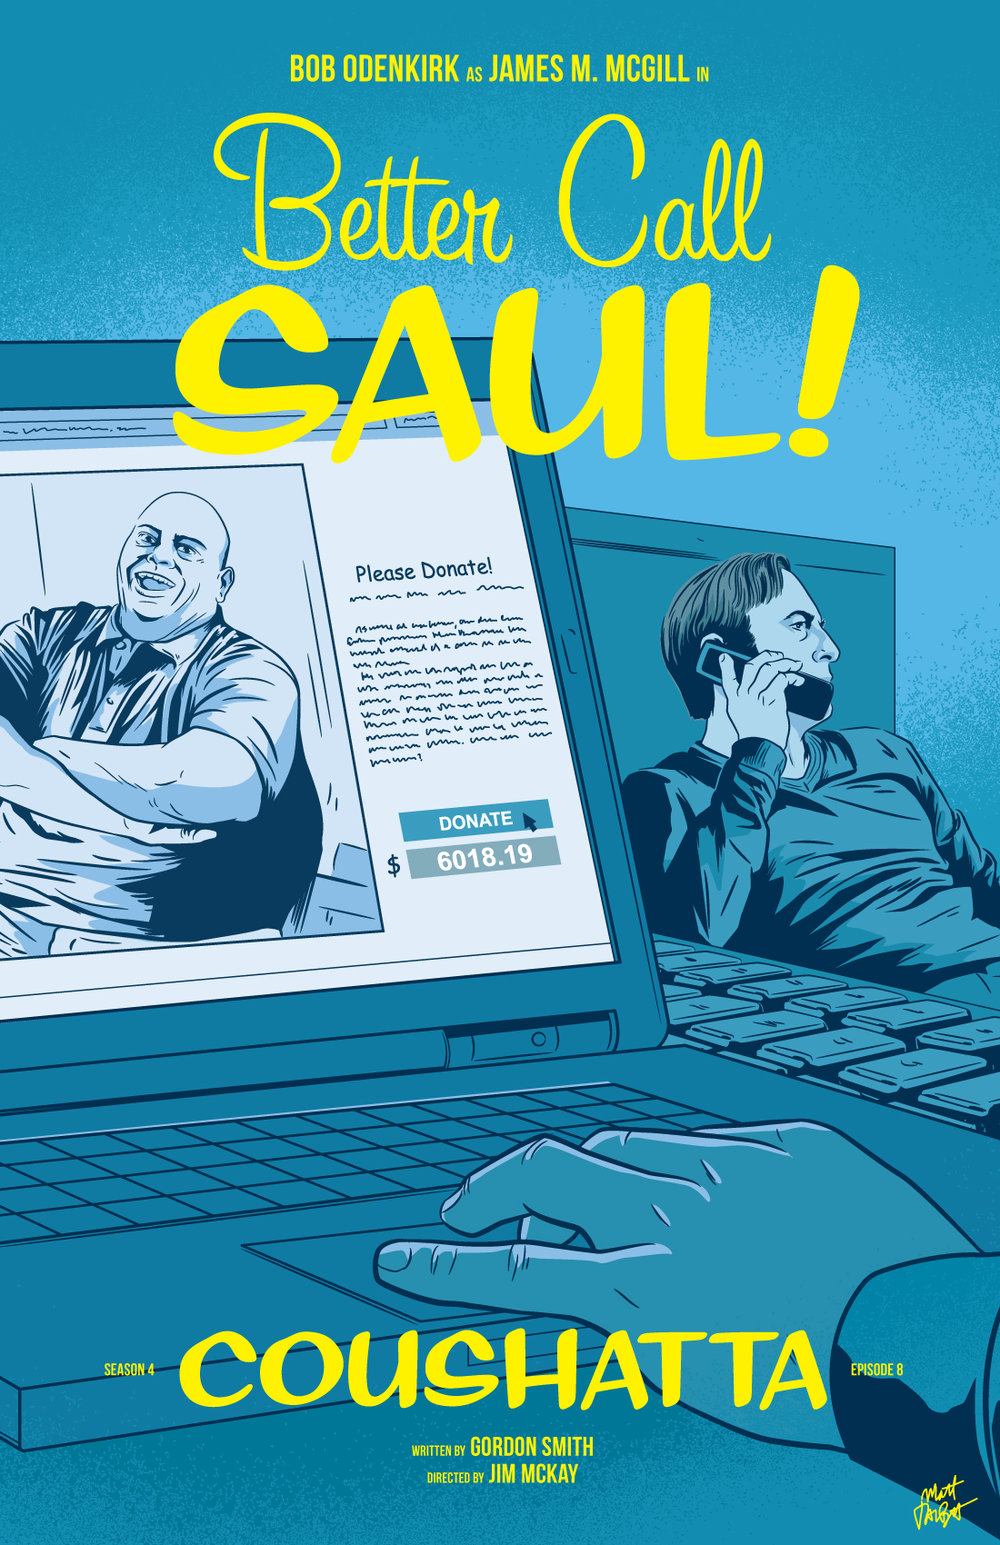 Better Call Saul season 4 episode 8, Coushatta, poster by Matt Talbot